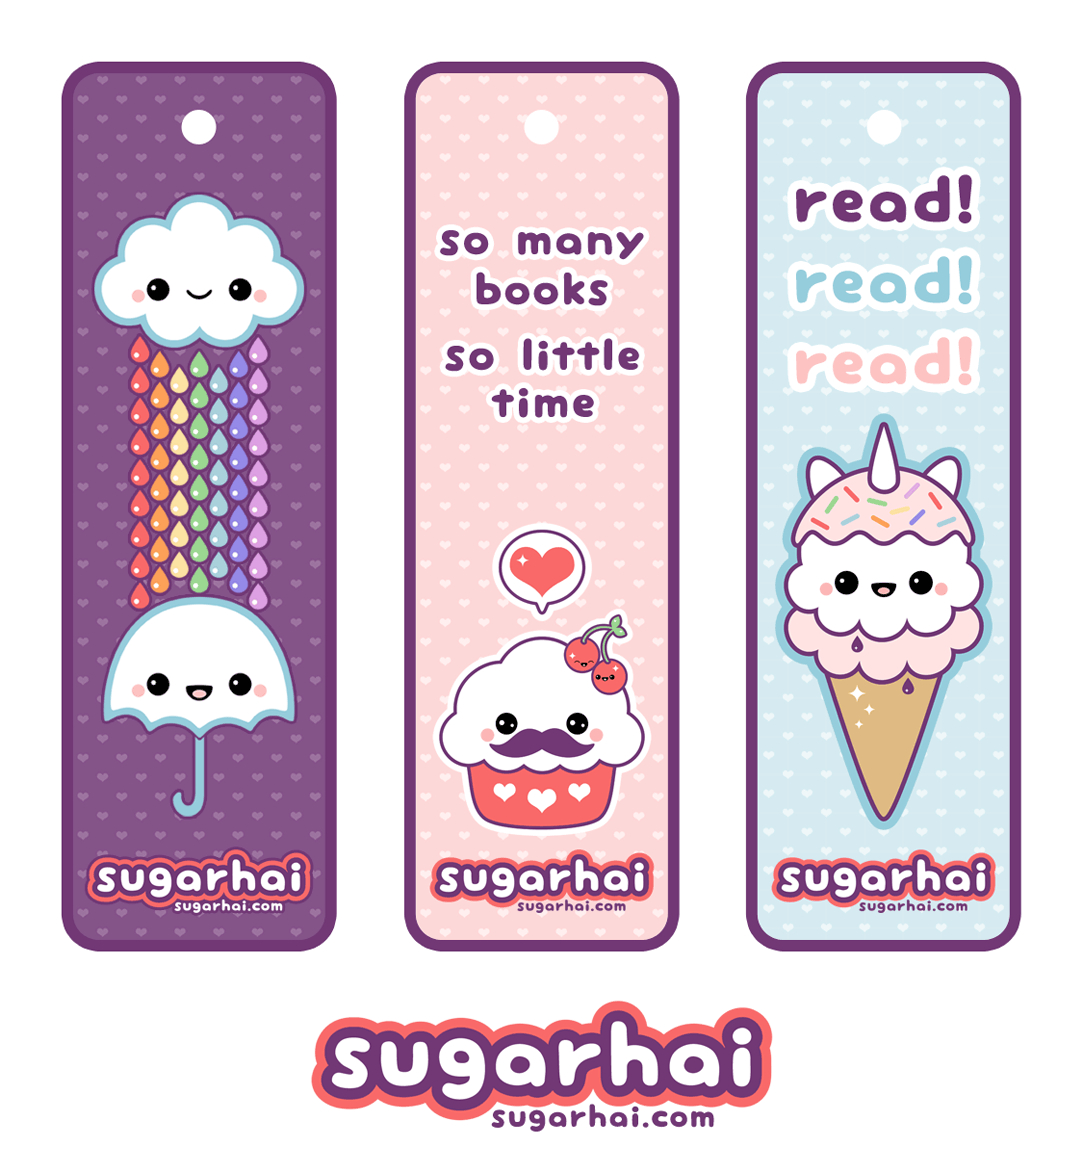 Cute Printable Bookmarks | I Want | Pinterest | Cool Bookmarks, Cute - Anime Bookmarks Printable For Free